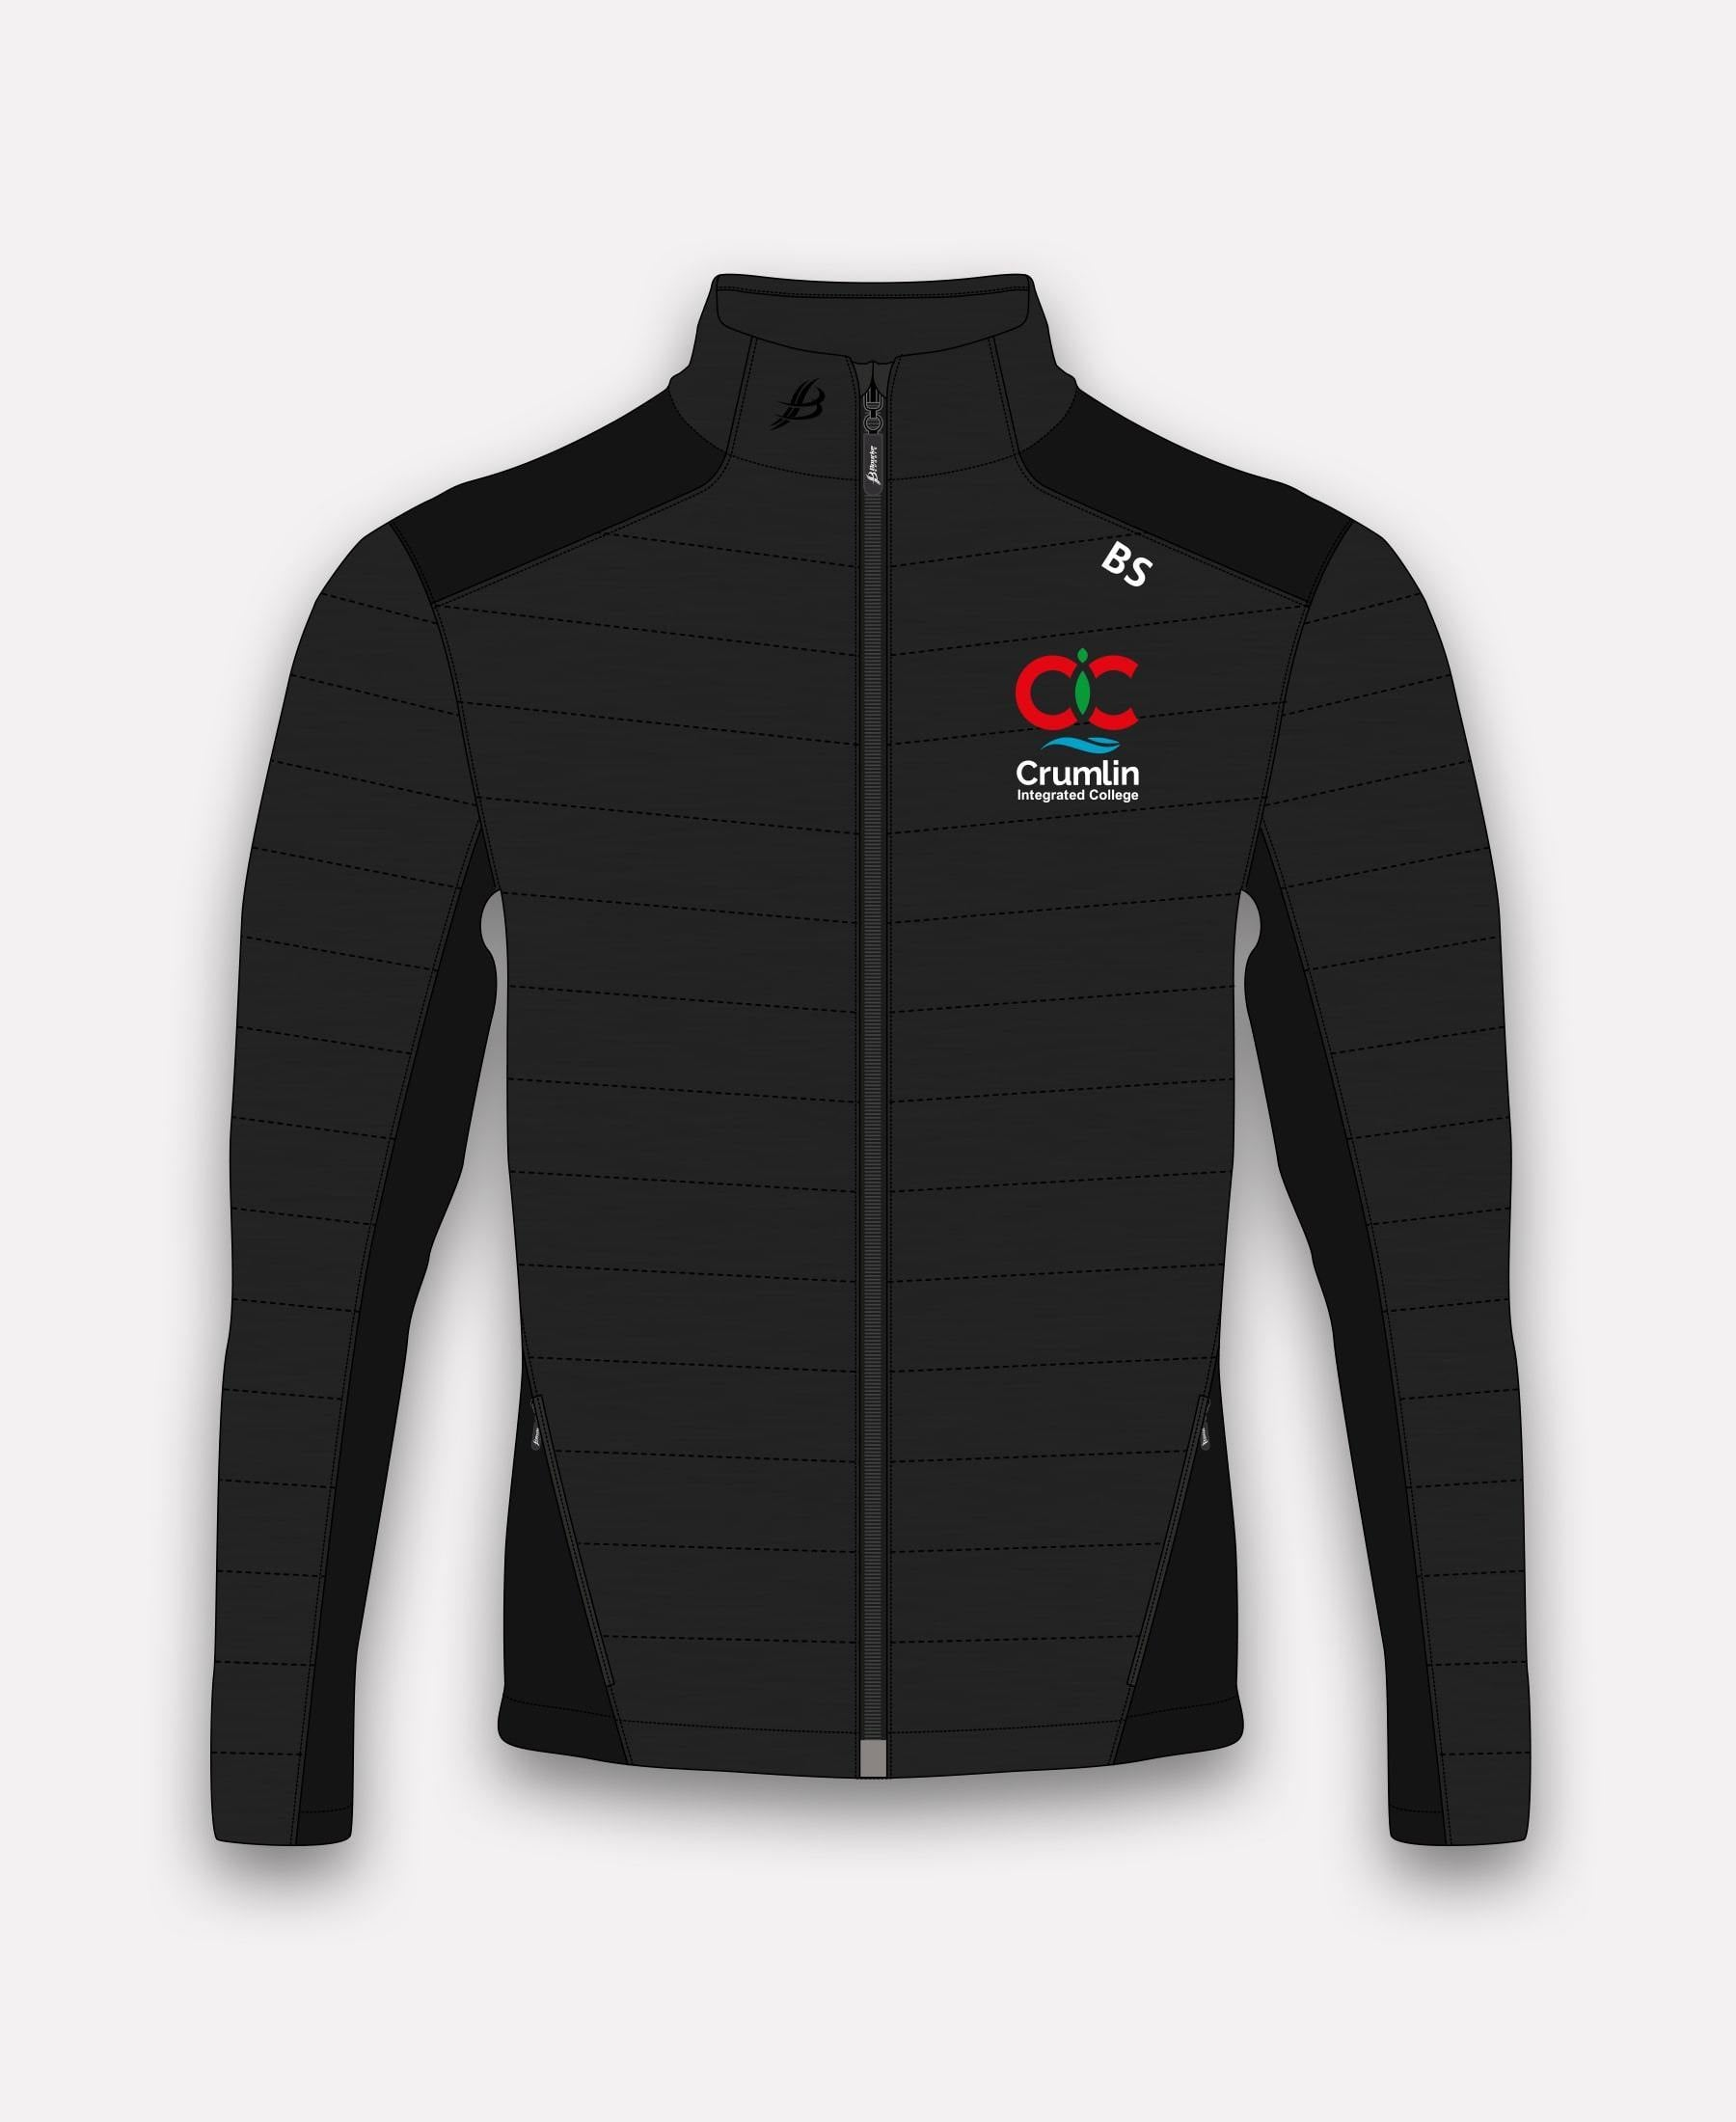 Crumlin Integrated College BUA Jacket - Bourke Sports